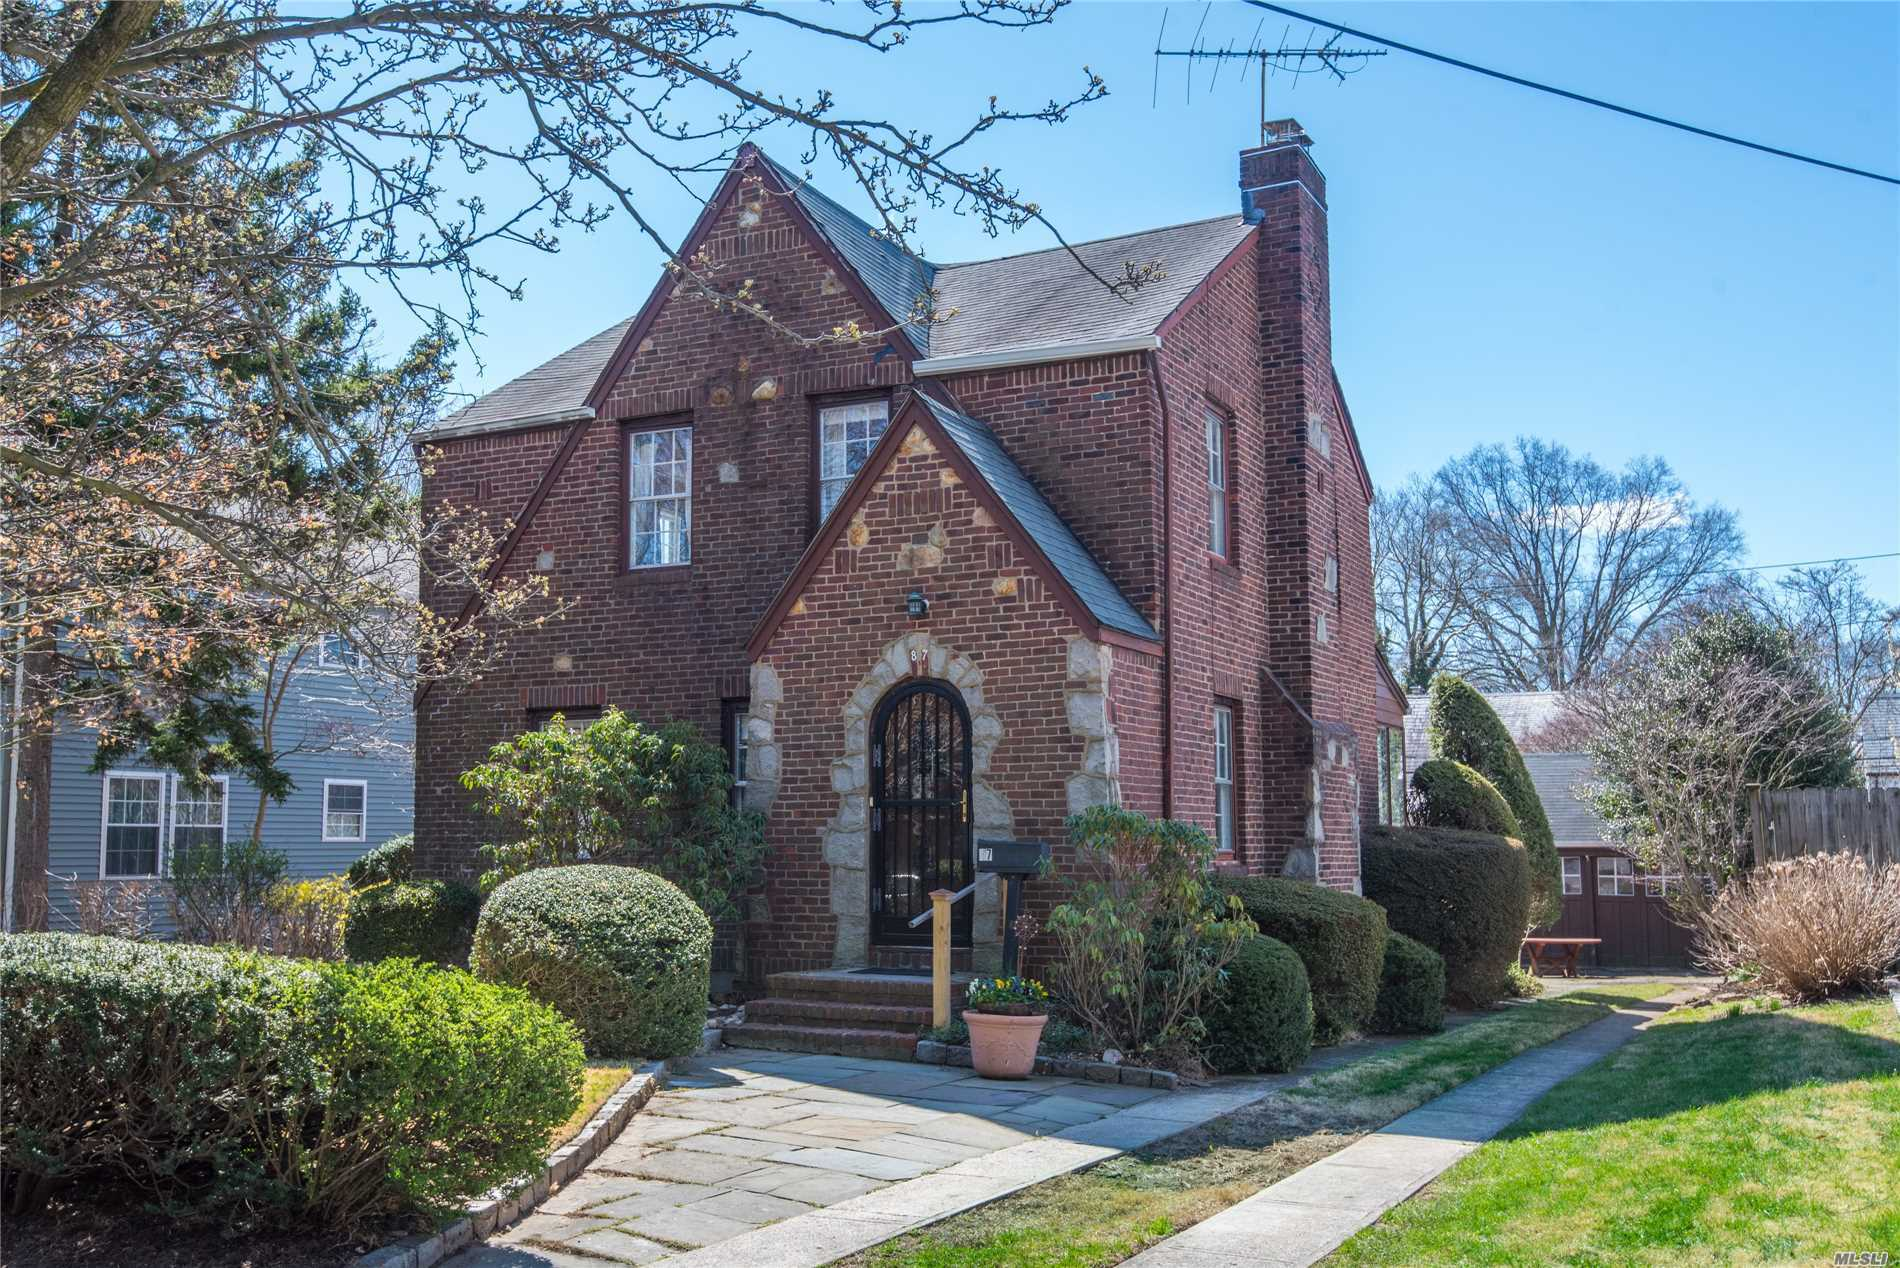 Add Your Special Touch To This Classic Brick Tudor In Desirable Estate Section With A Beautiful Secluded Back Yard.Formal Living Room With Brick Fireplace. Formal Dining Room, Eat In Kitchen 3 Bedrooms 1.5 Bath.Overlooking Lovely Gardens And A Detached Garage.